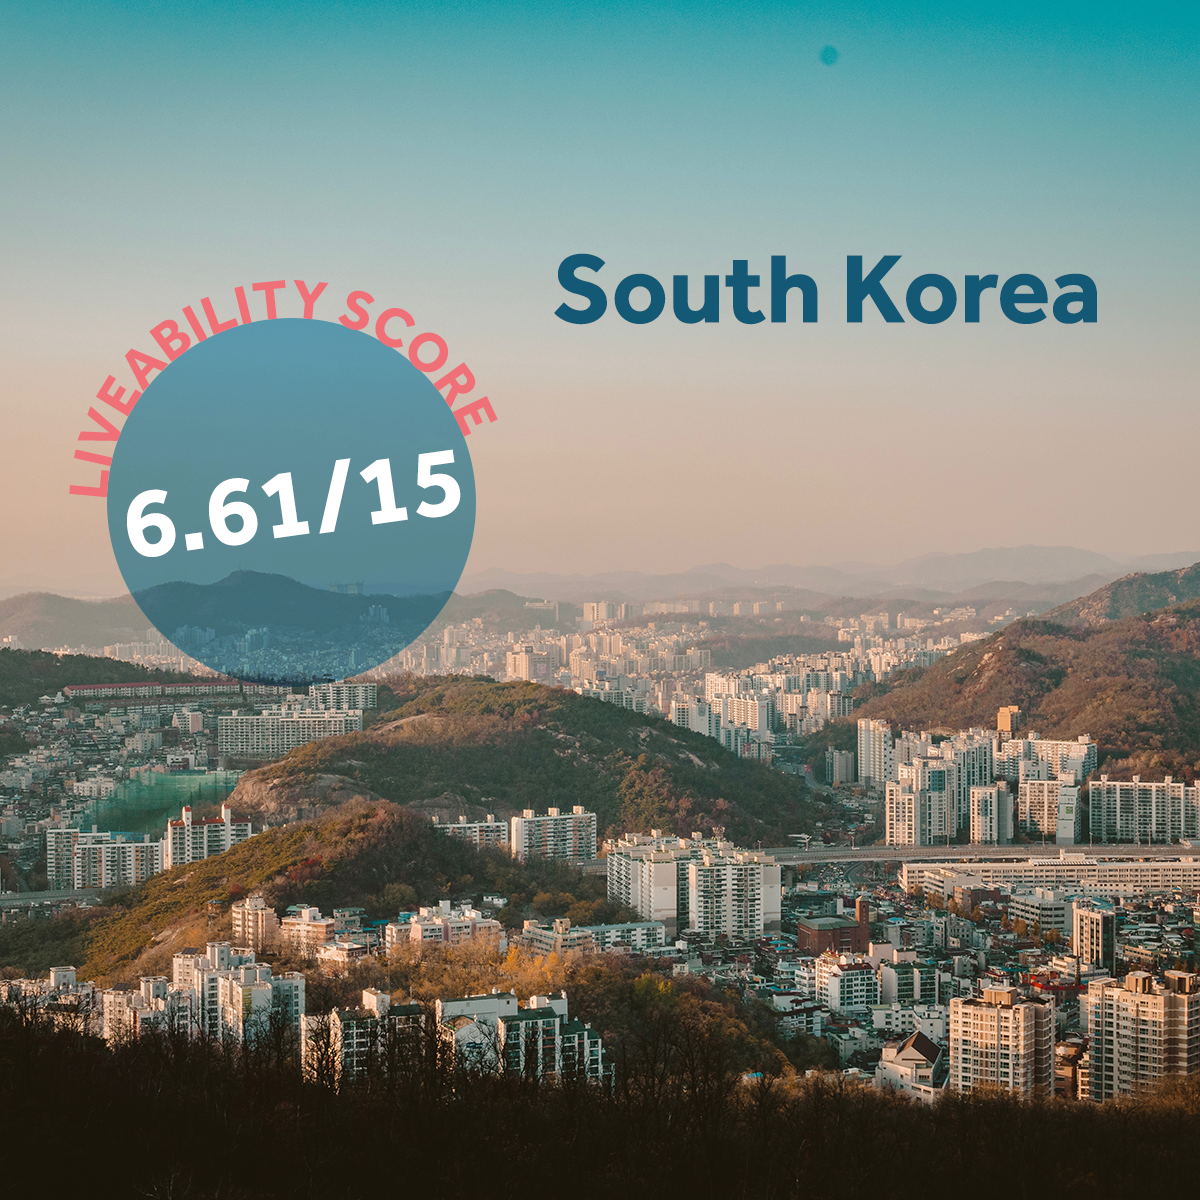 South Korea - US expat destination